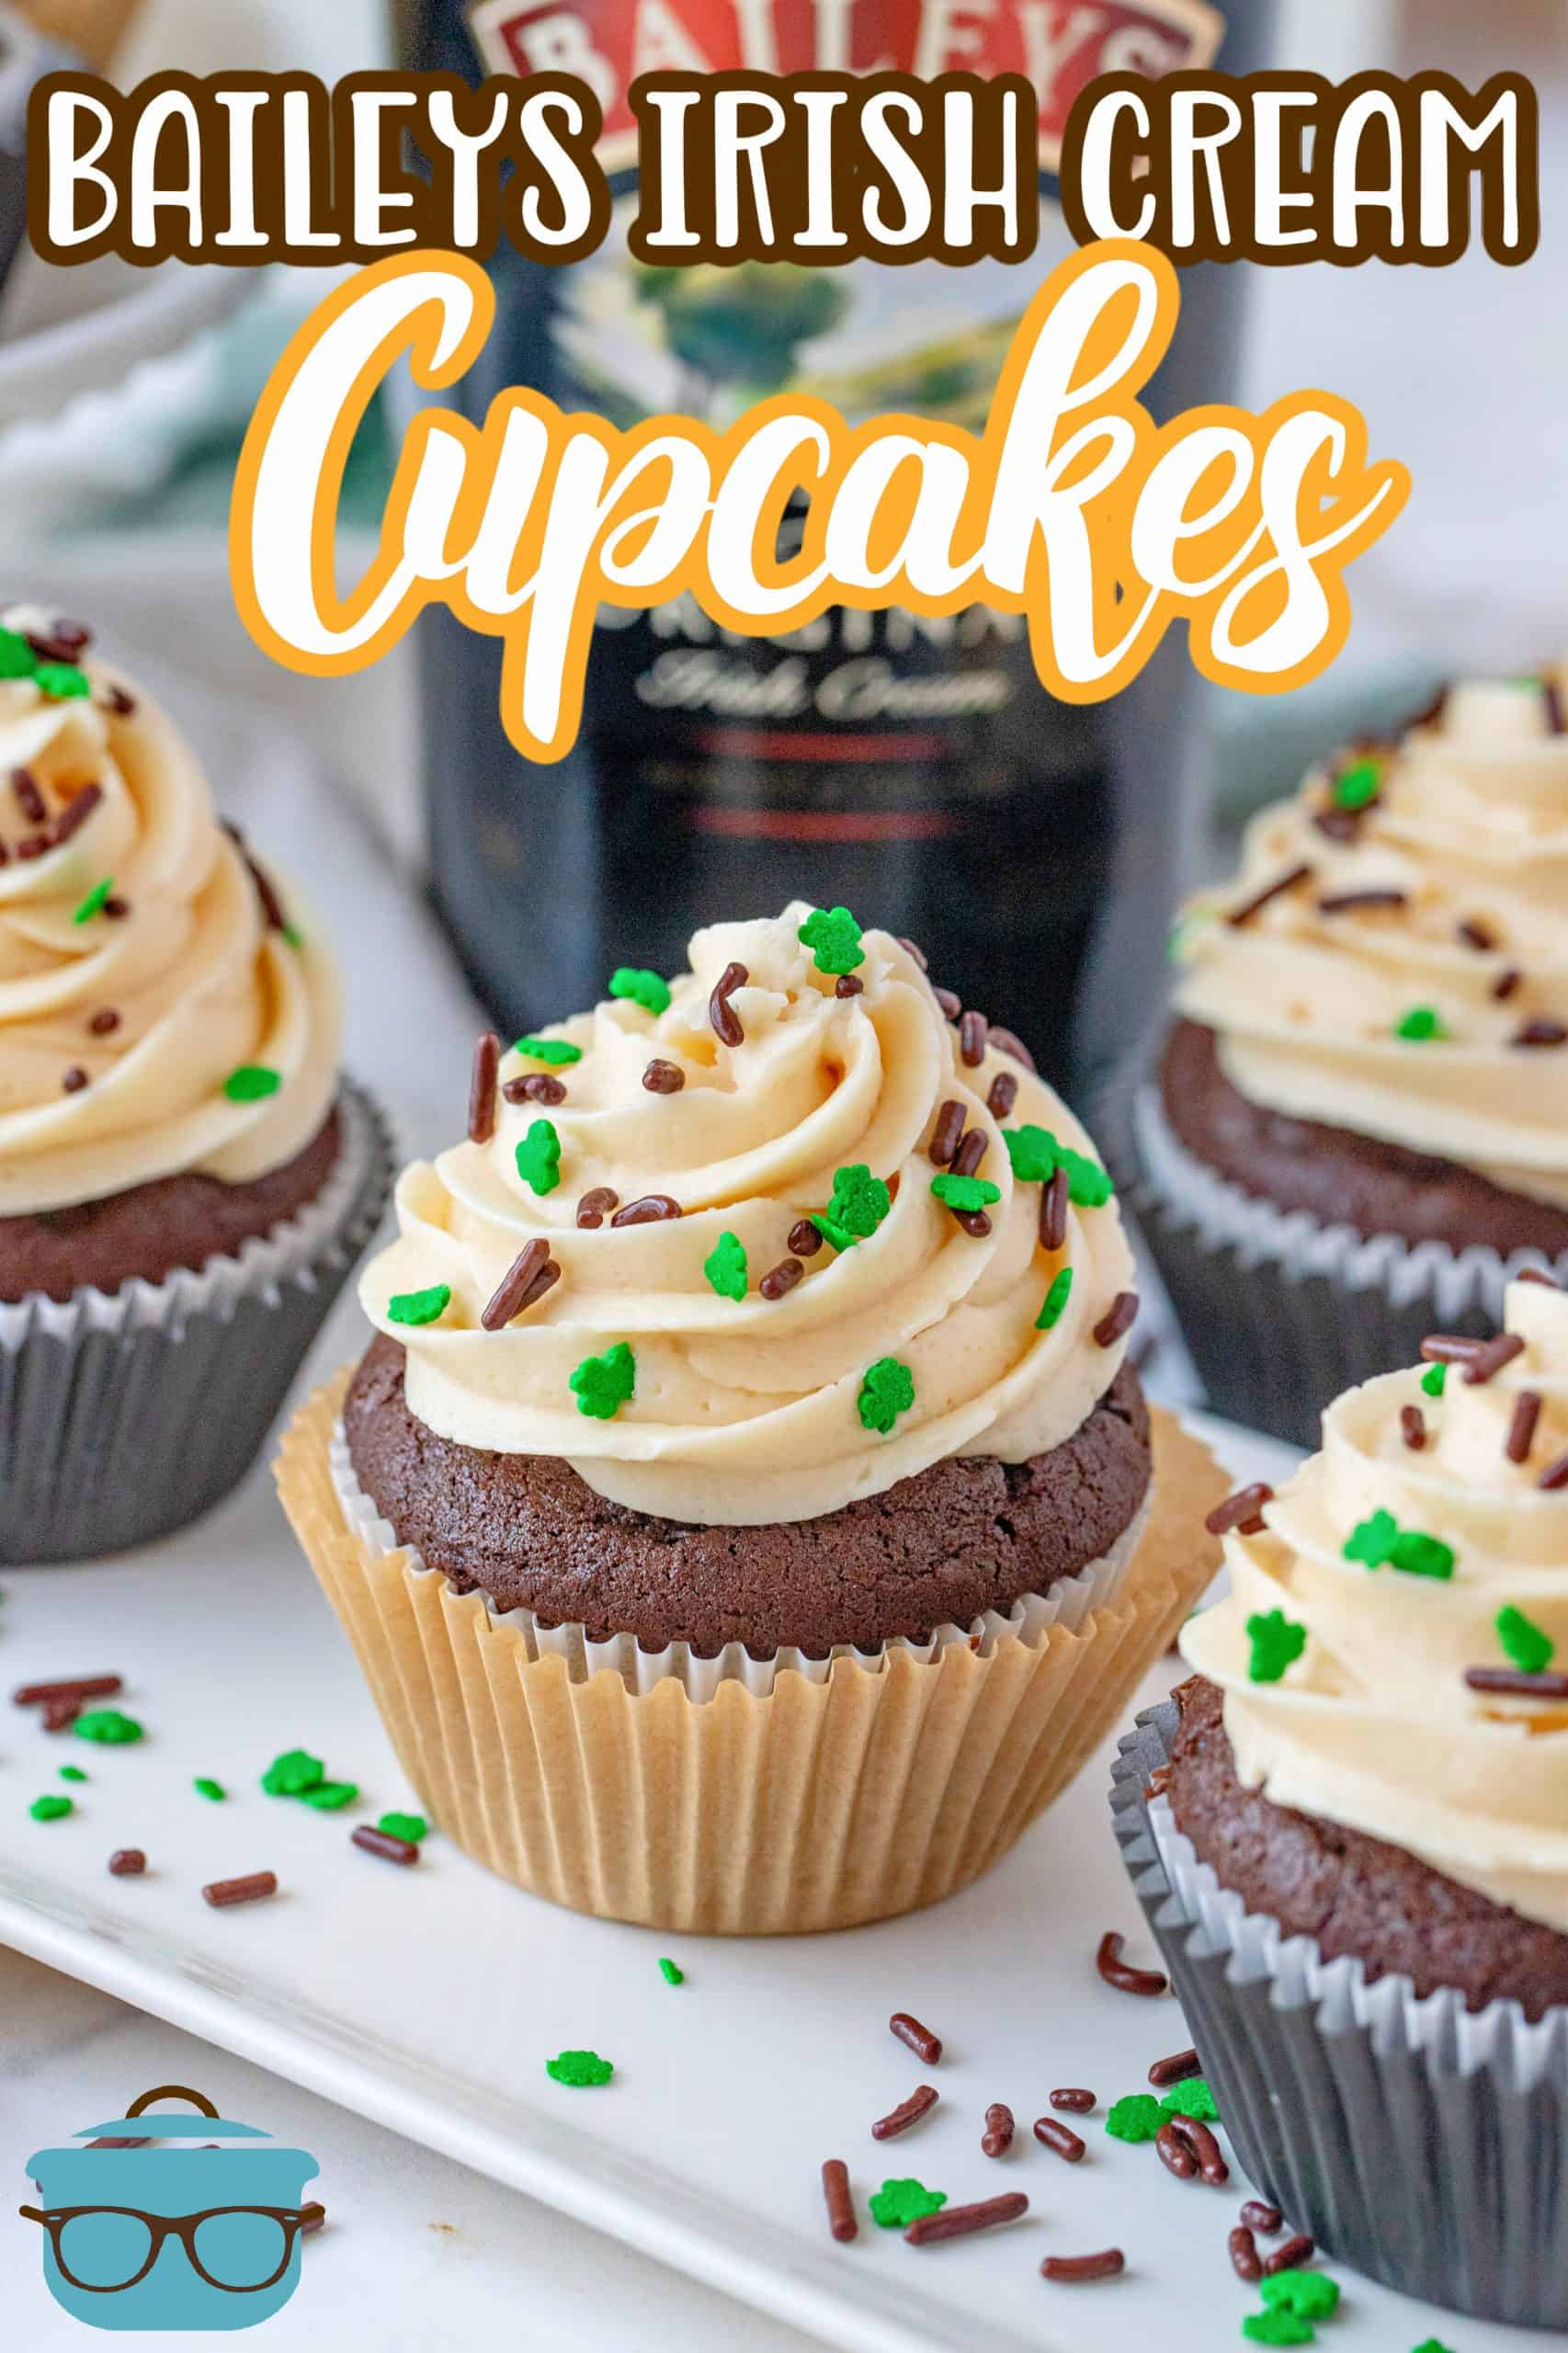 If you love chocolate and Irish Cream then you will absolutely love these Homemade Baileys Cupcakes! A spiked cupcake topped with a Baileys frosting. Every bite is pure deliciousness.